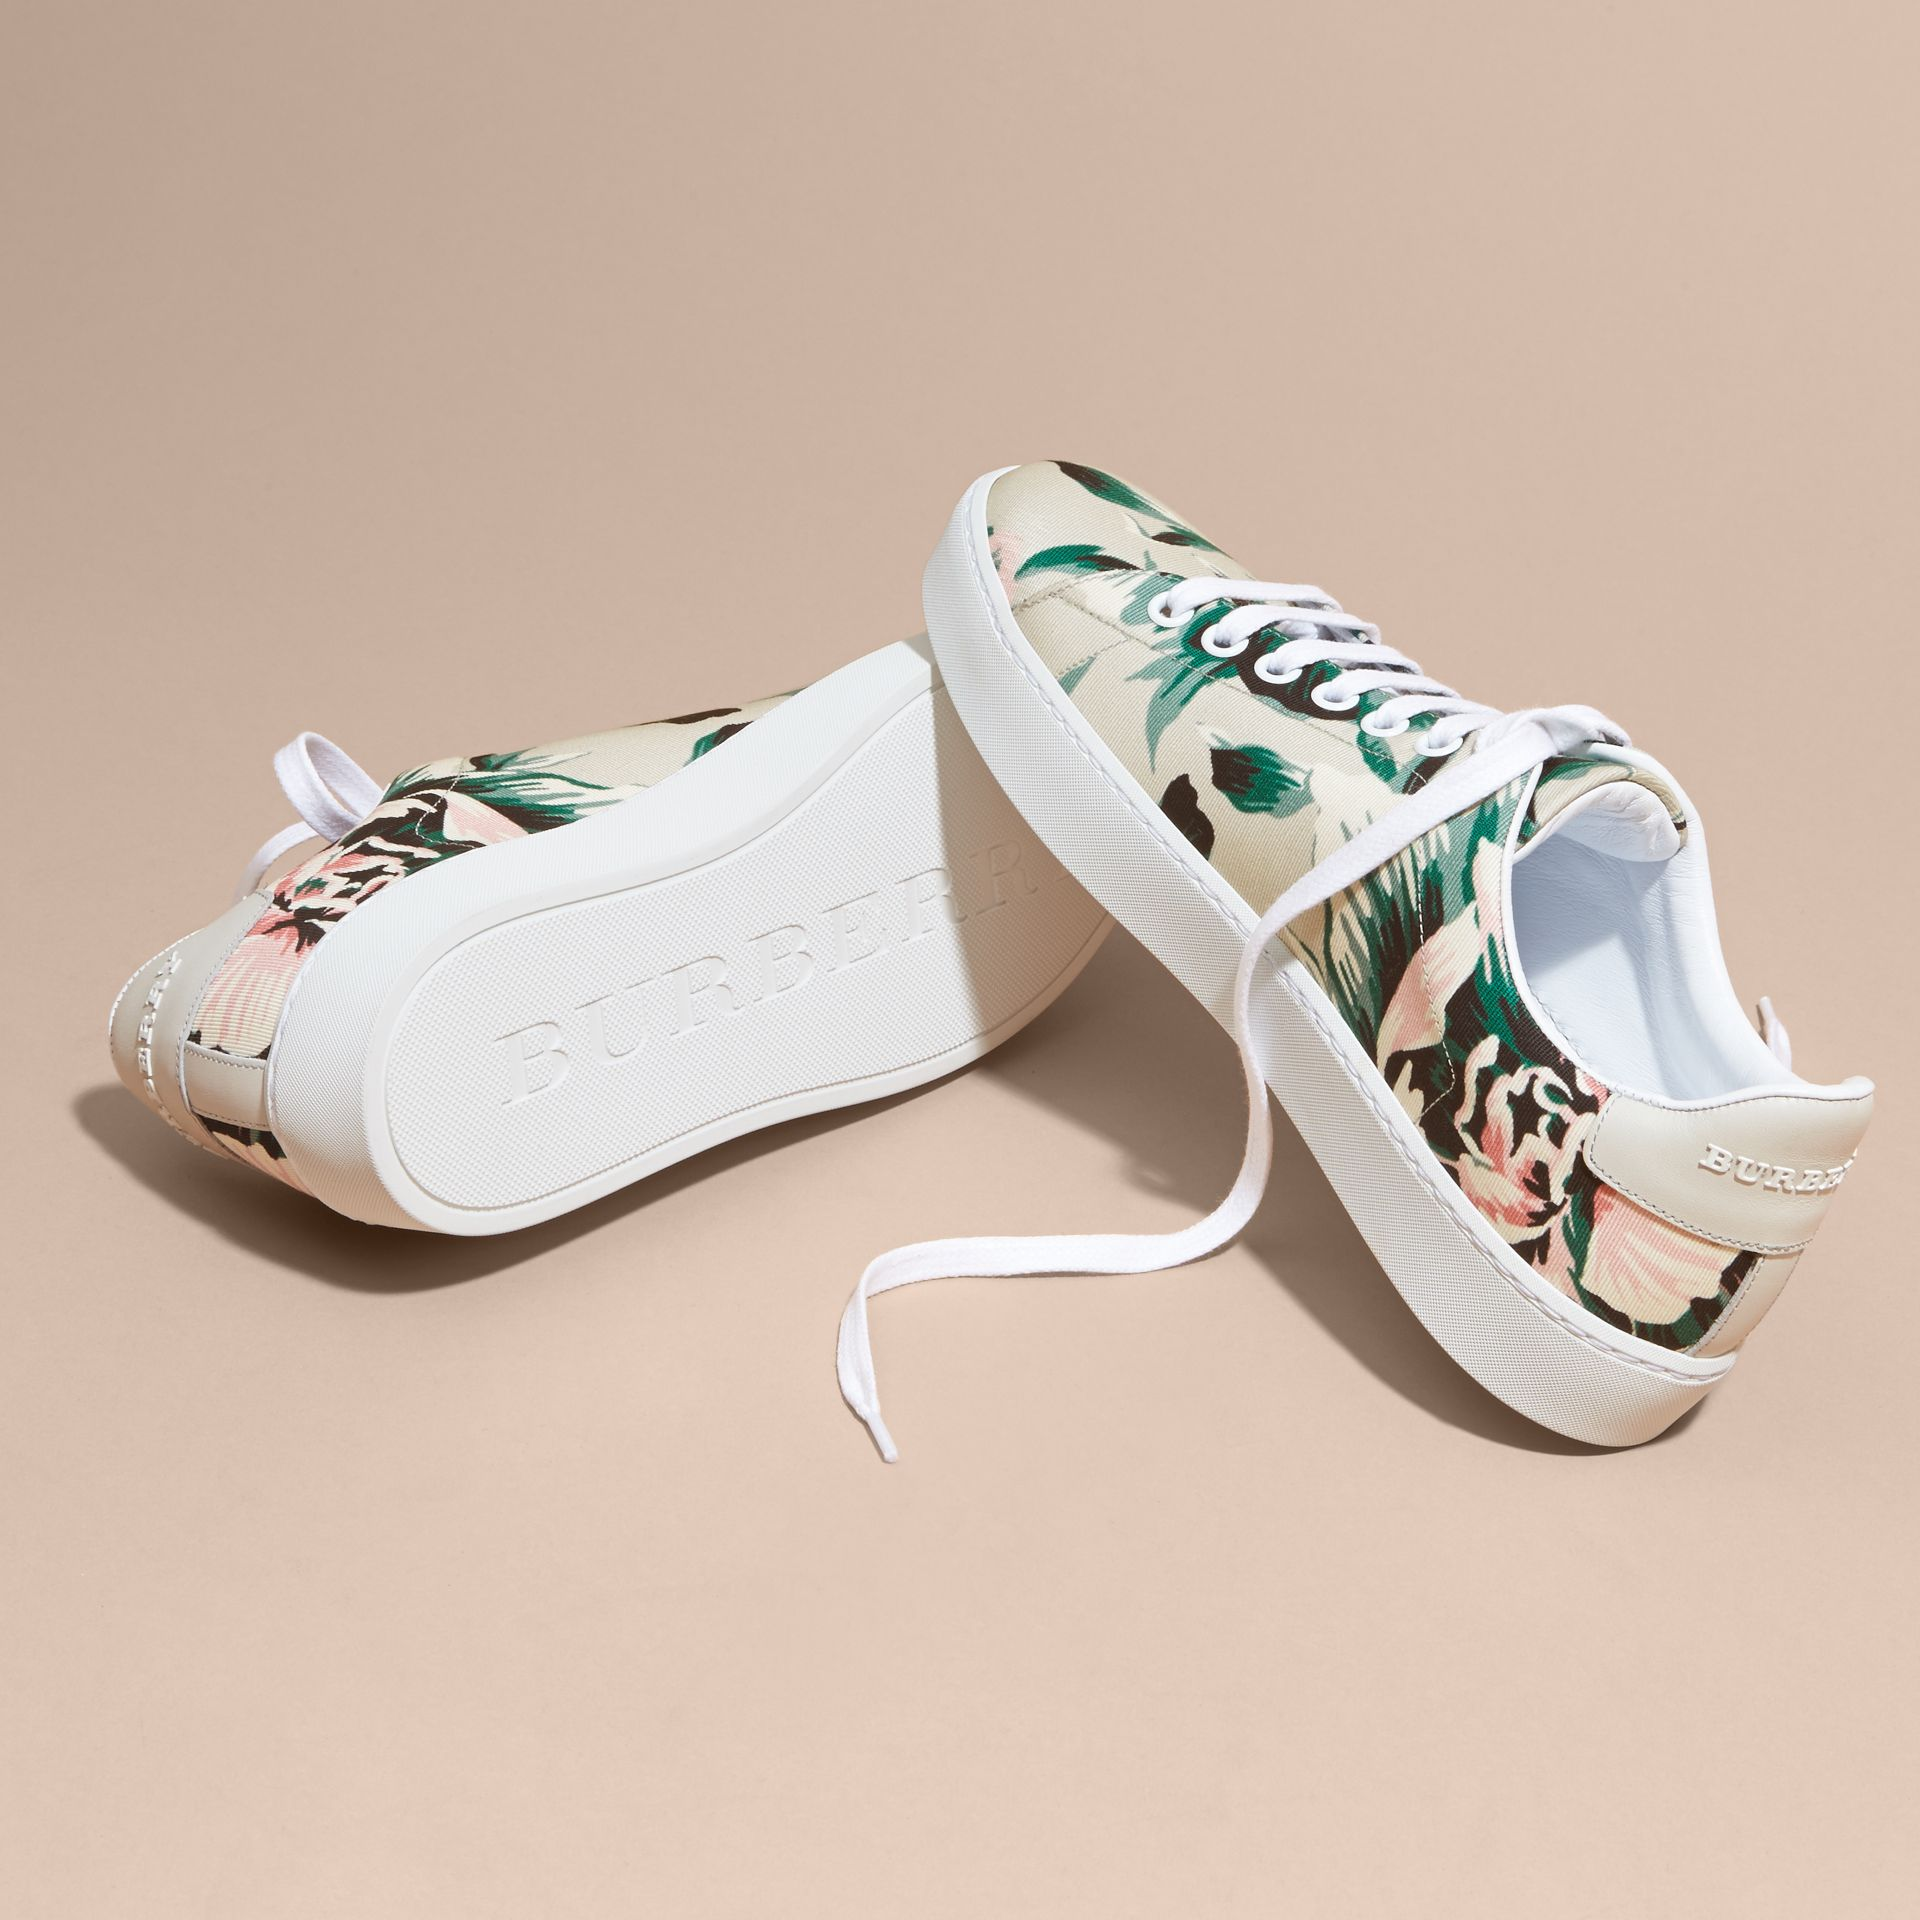 Emerald green Peony Rose Print Canvas and Leather Sneakers Emerald Green - gallery image 5